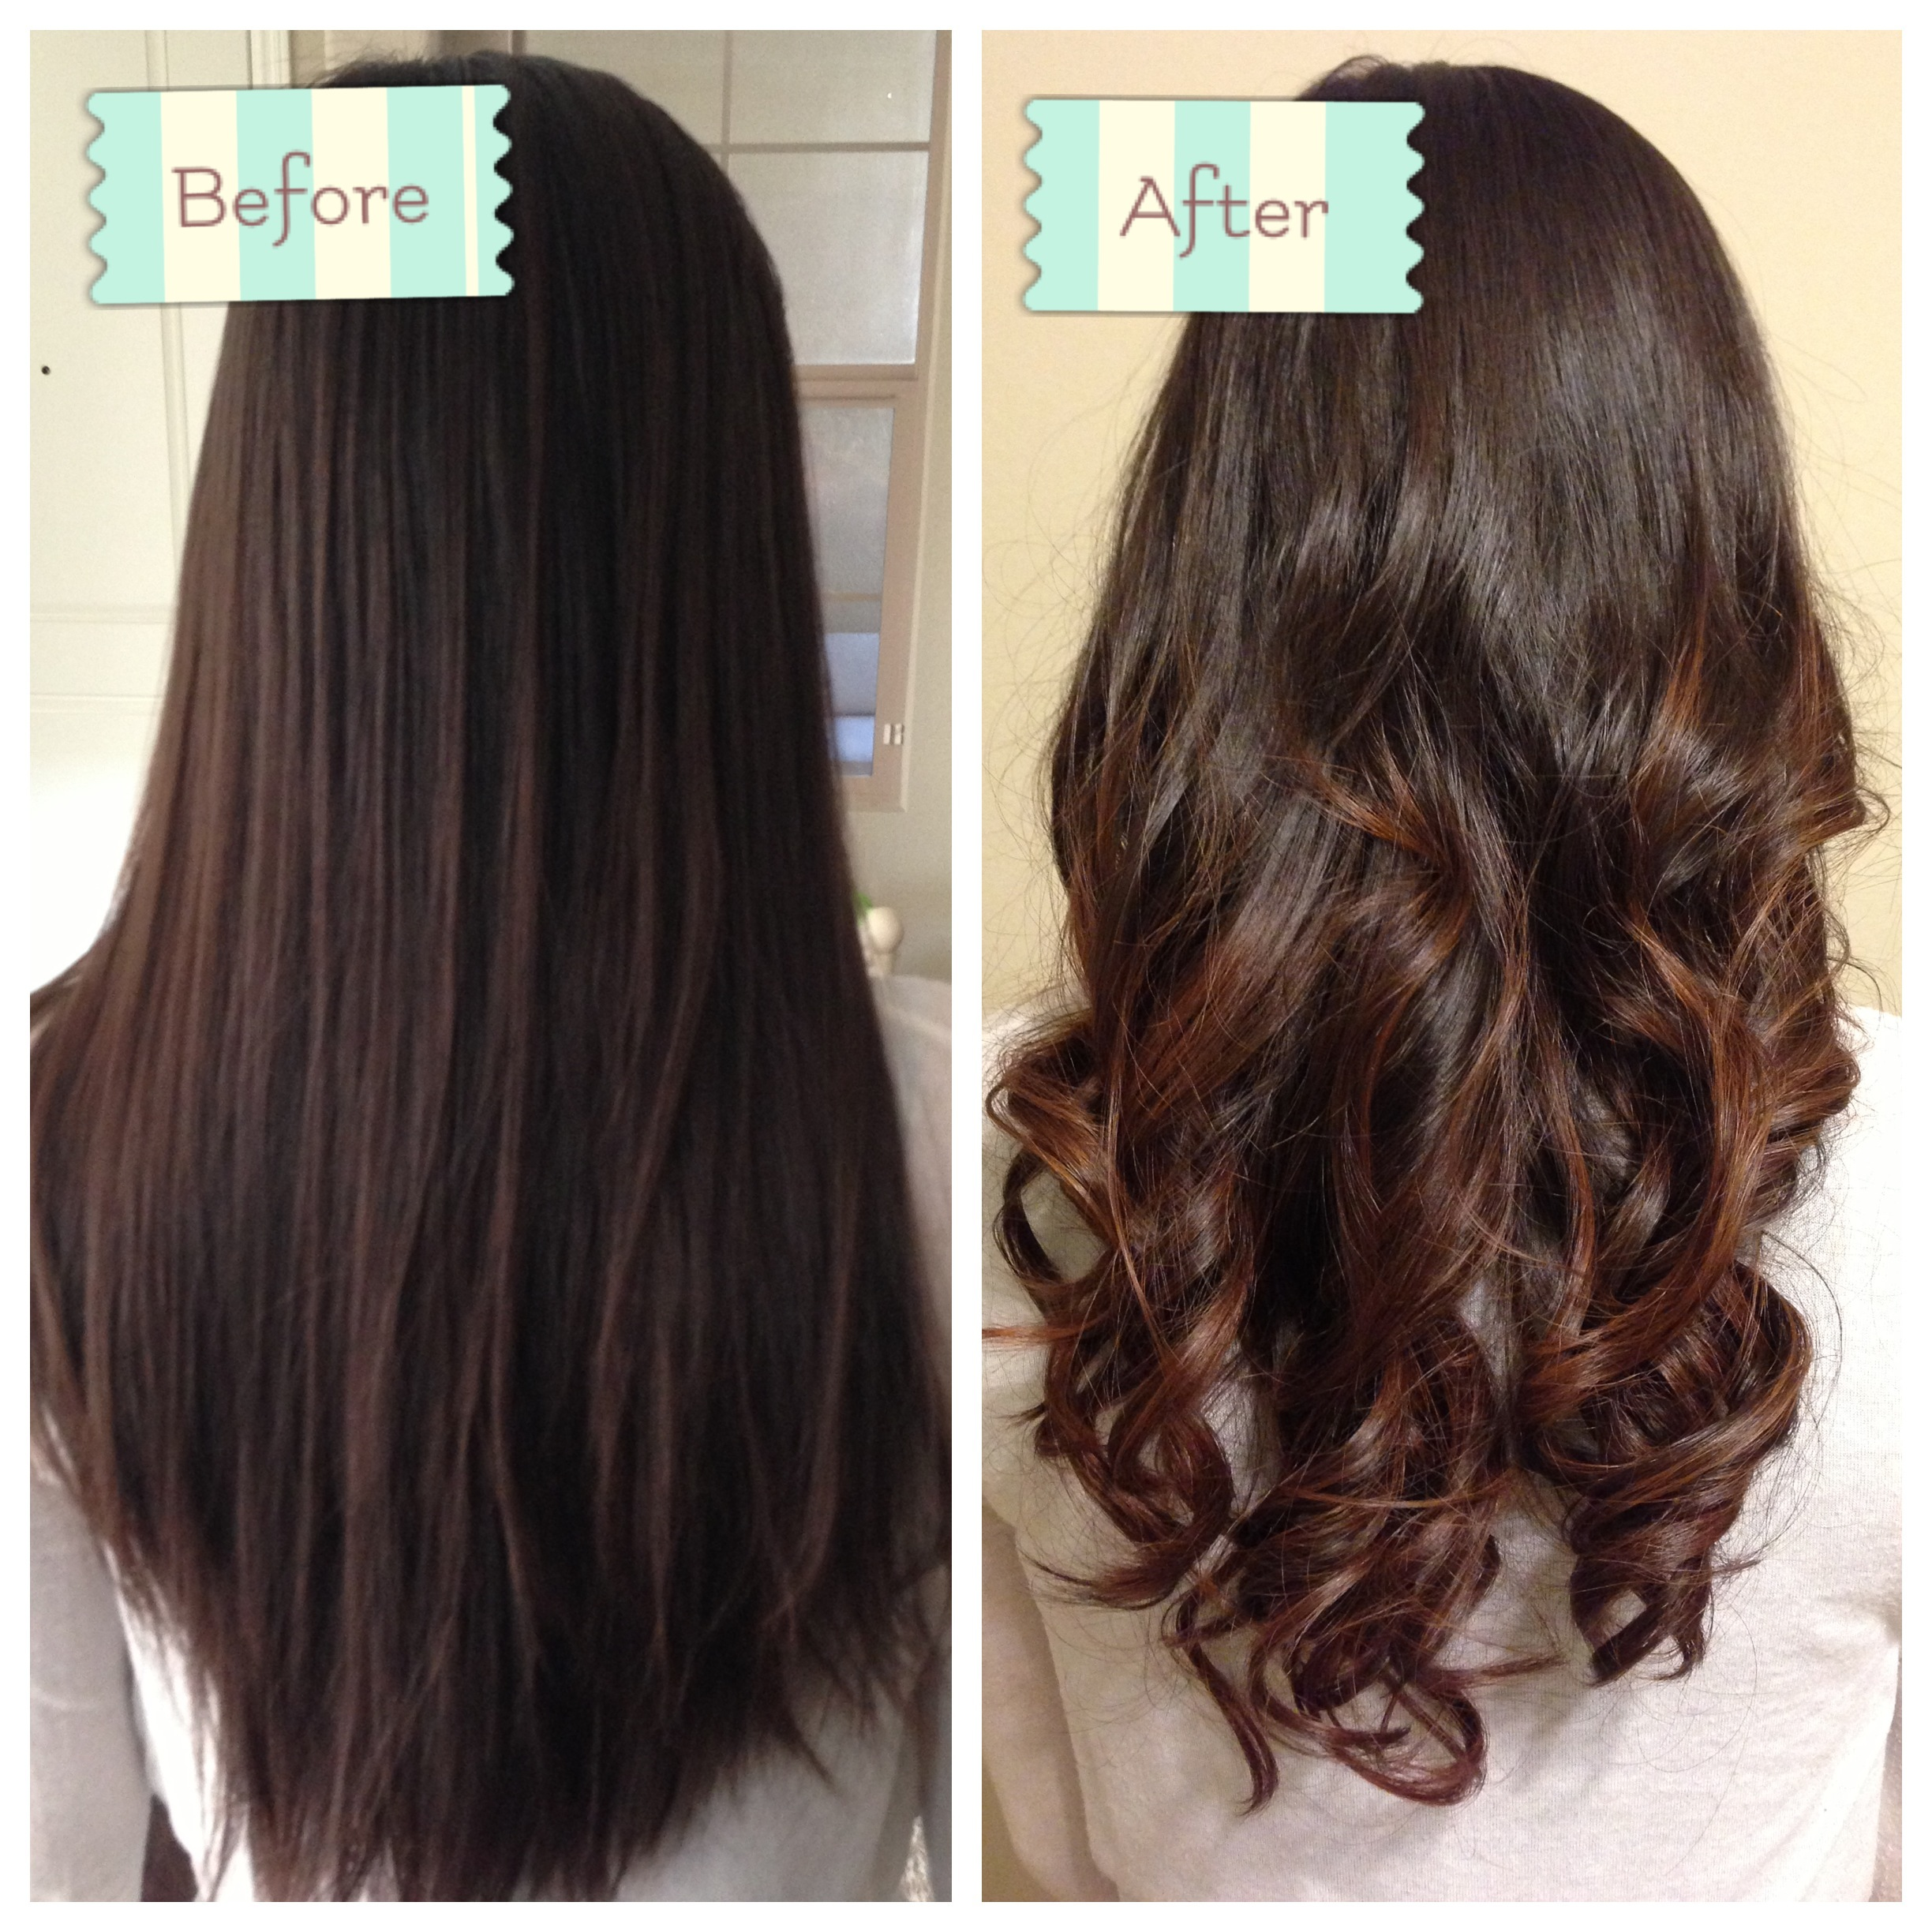 Permed Hair Before And After Before and after: back curled